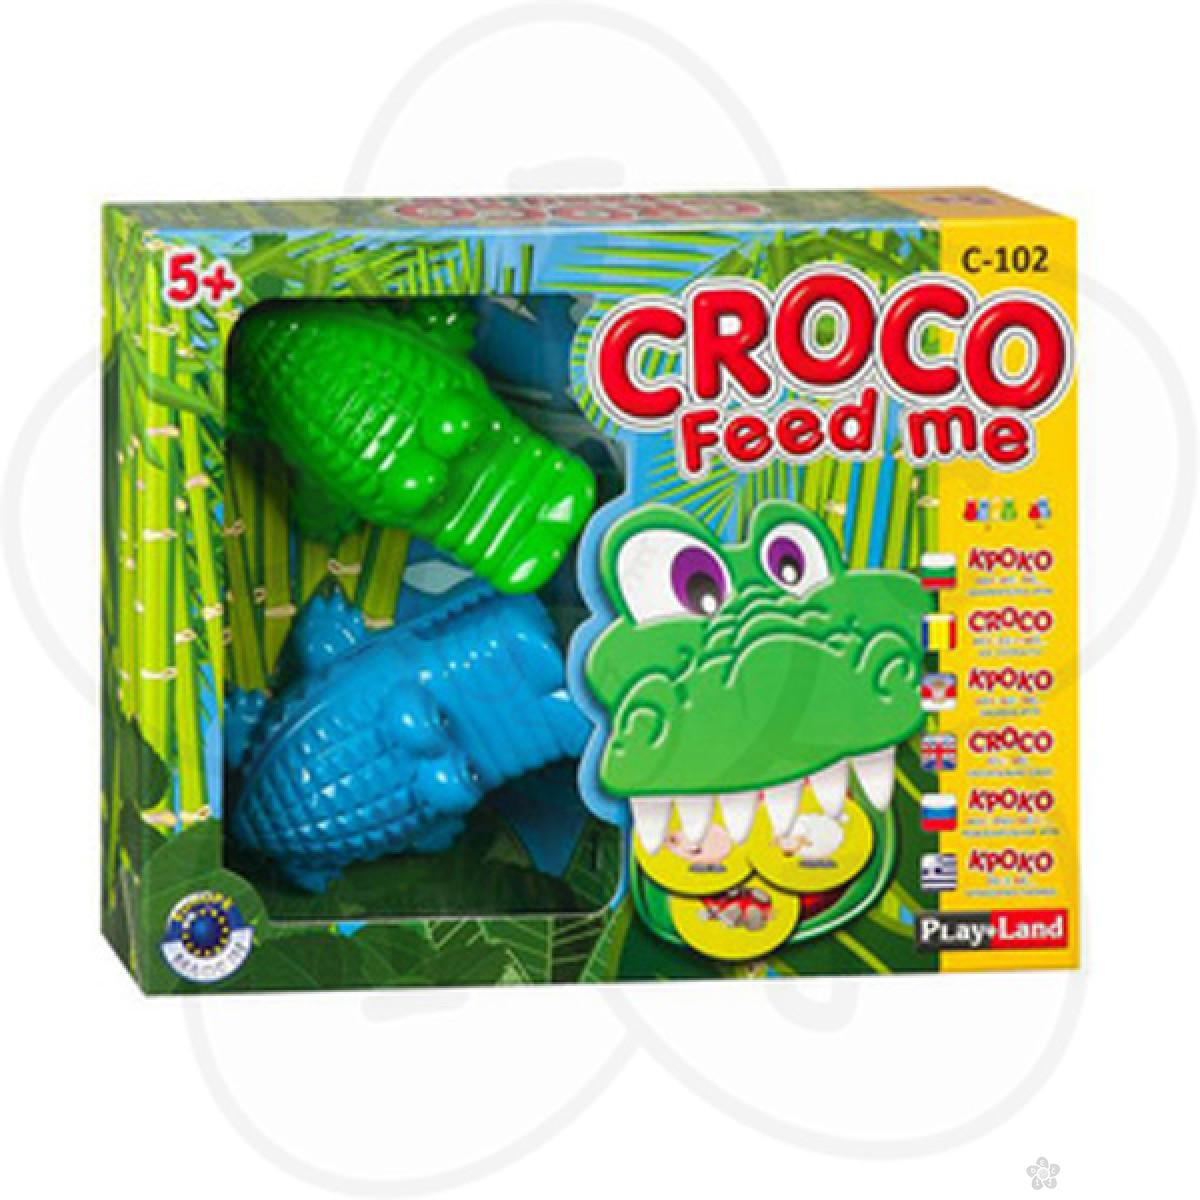 PlayLand Croco Feed me